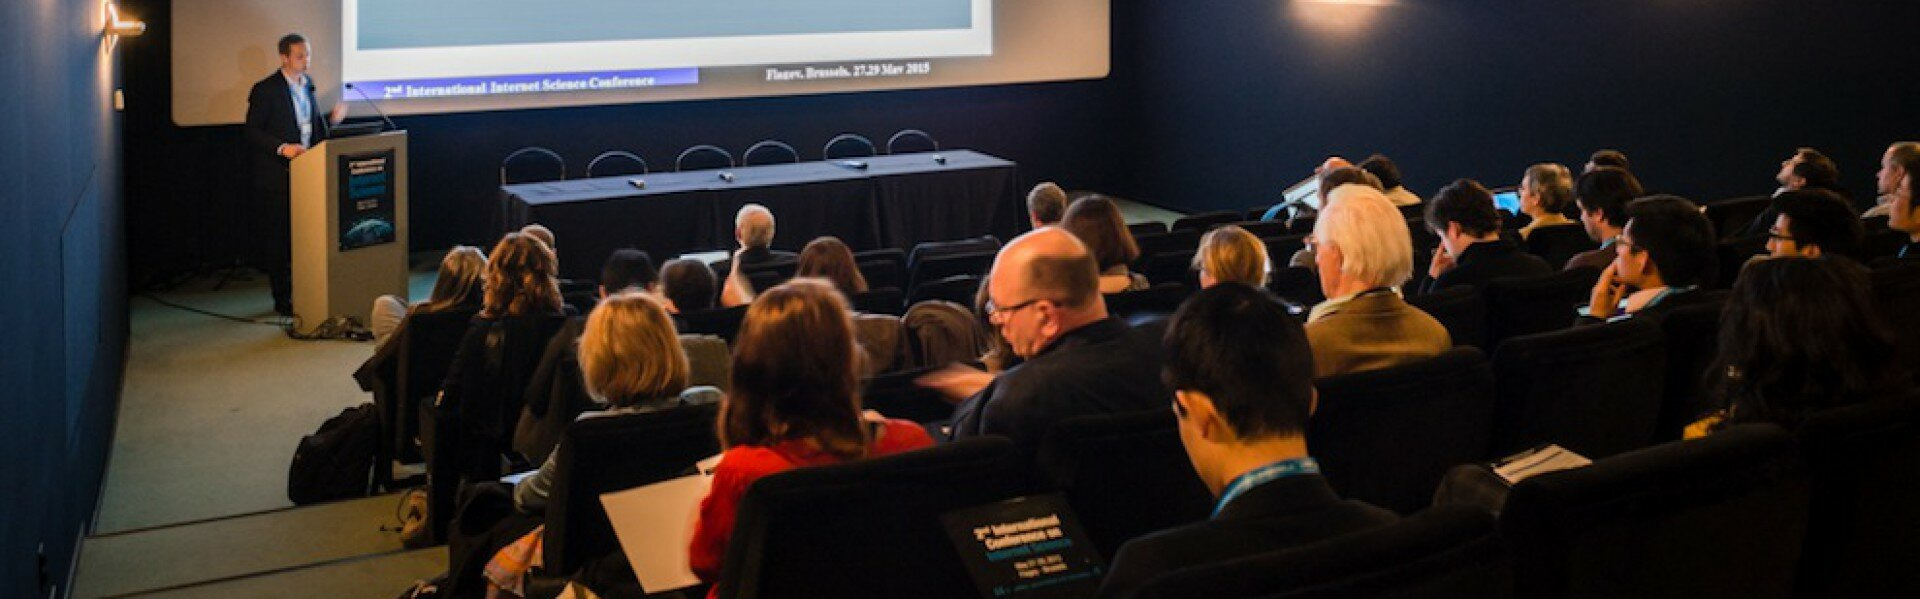 INSCI 2016: Openness, Collaboration and Collective Action